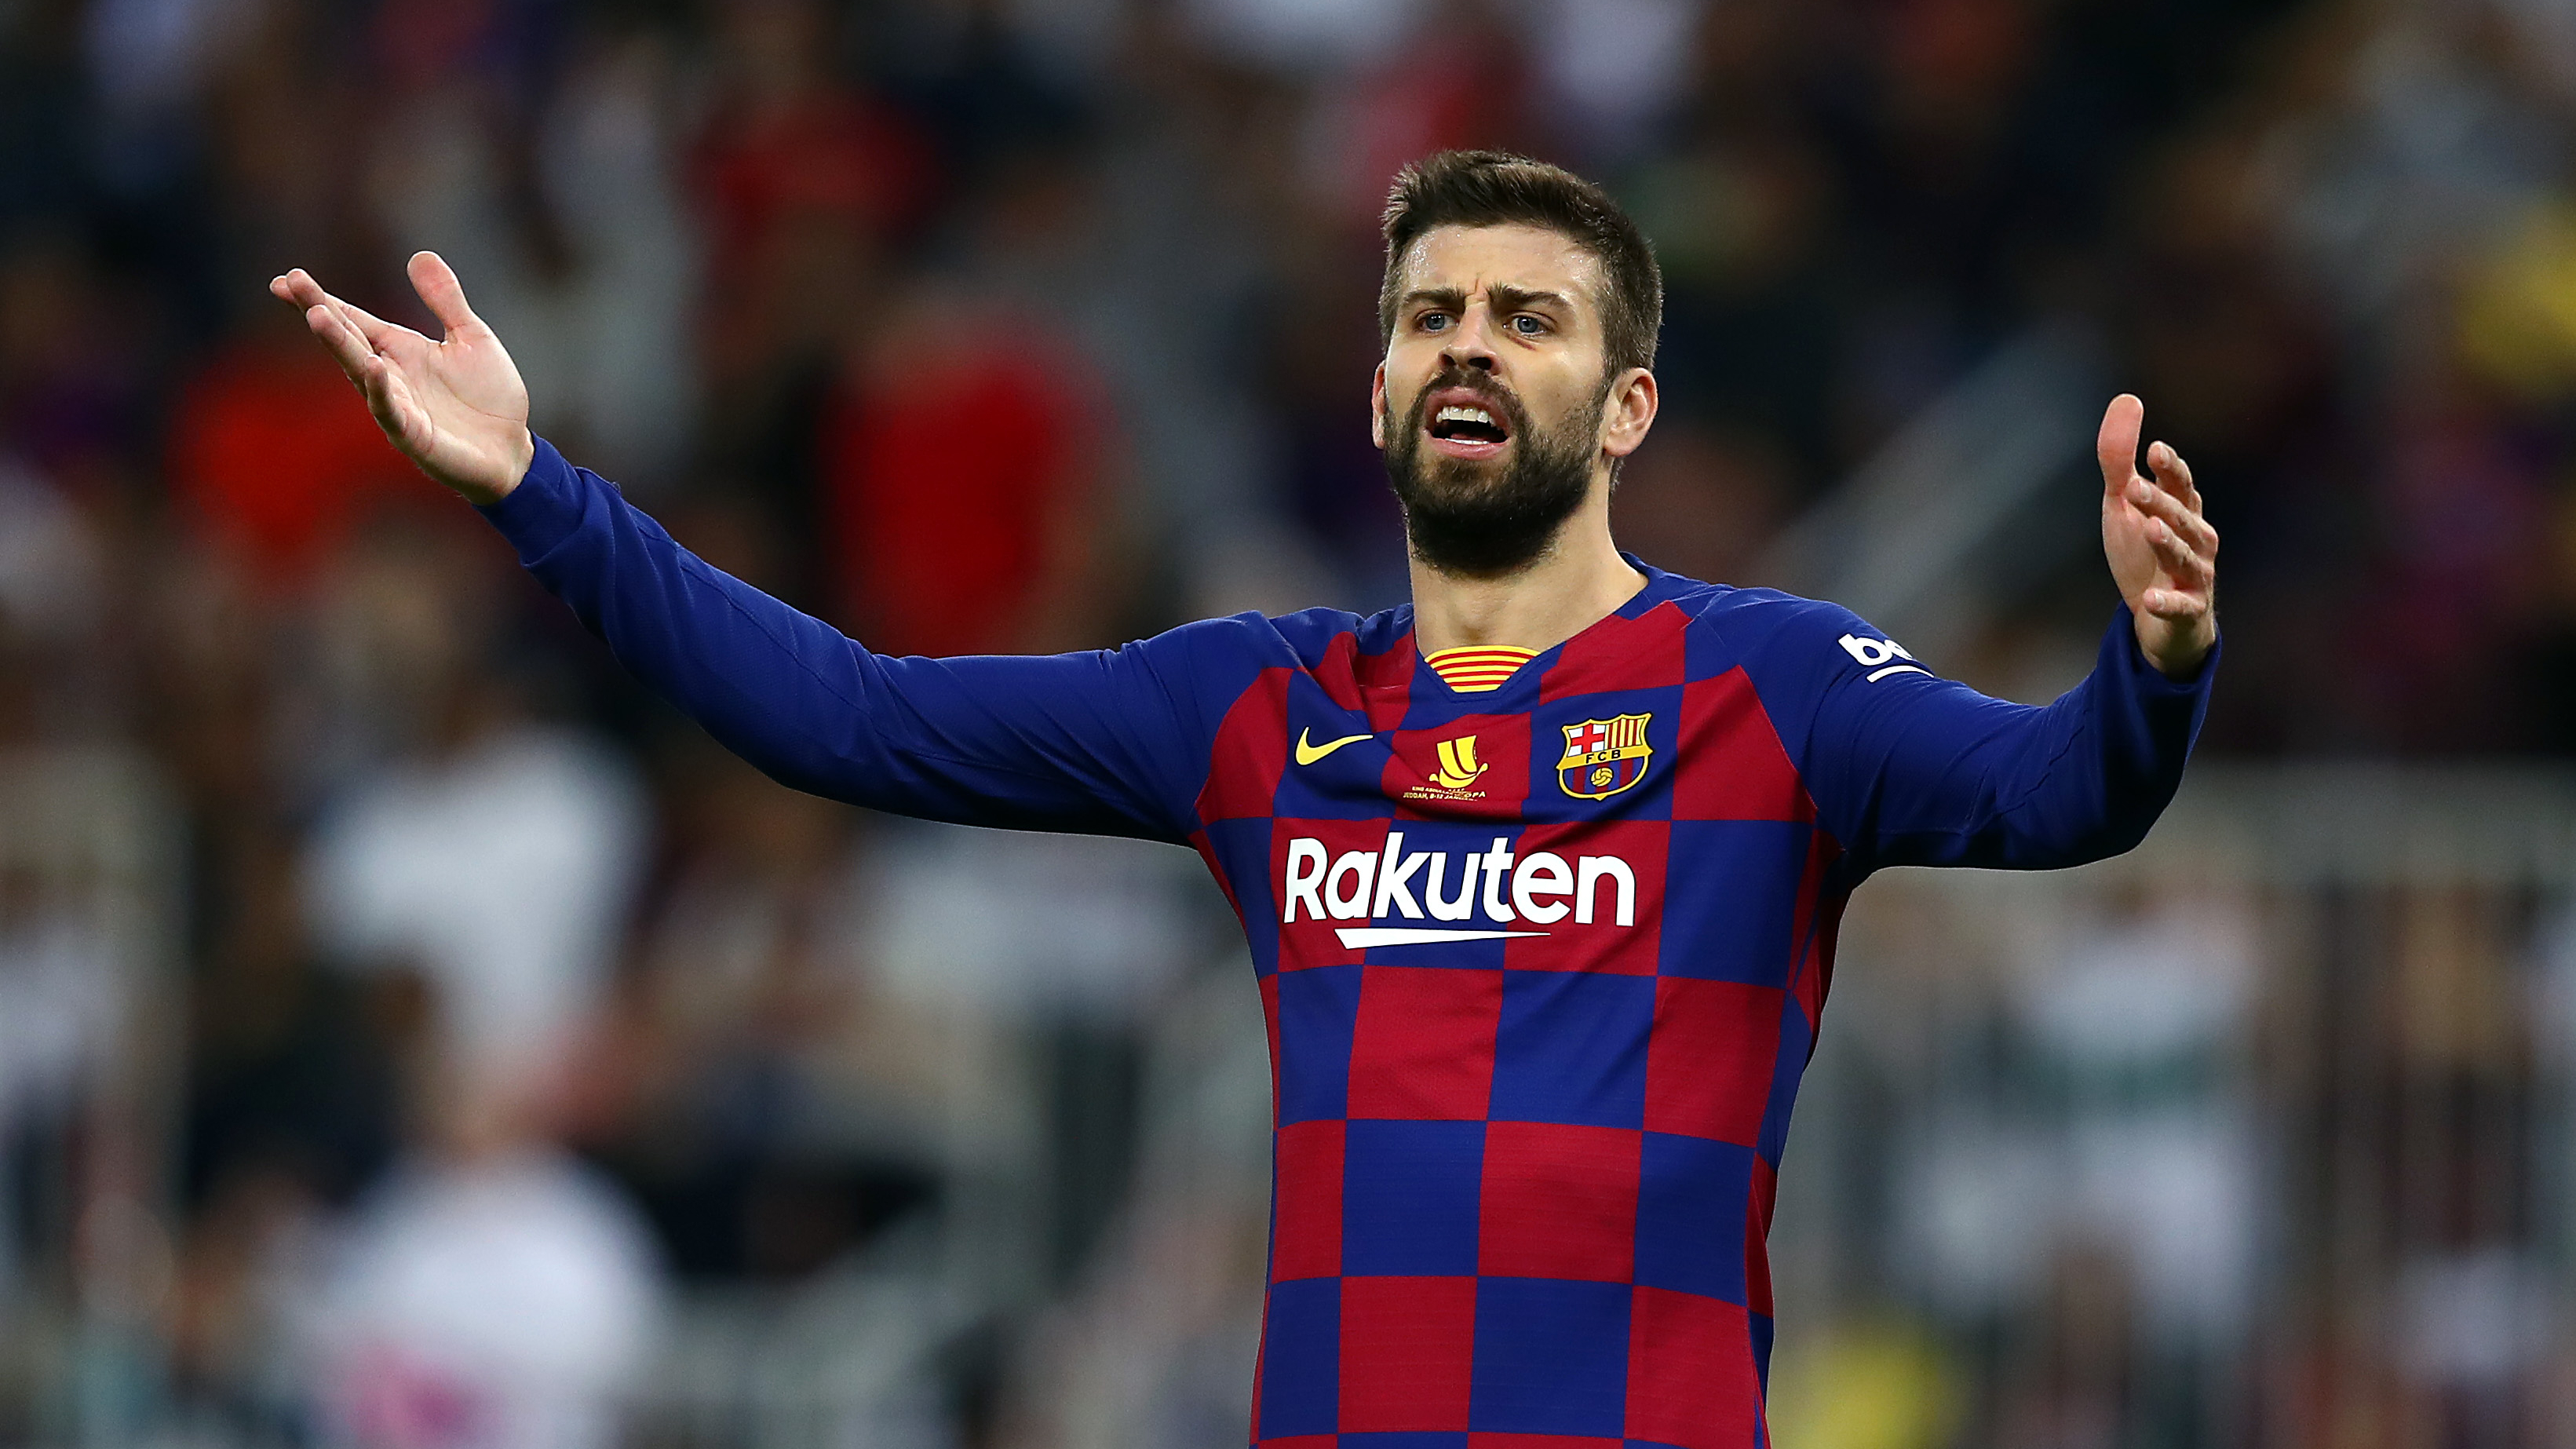 Pique on revealed number of referees supporting Real: How are they not going to whistle in their favour?